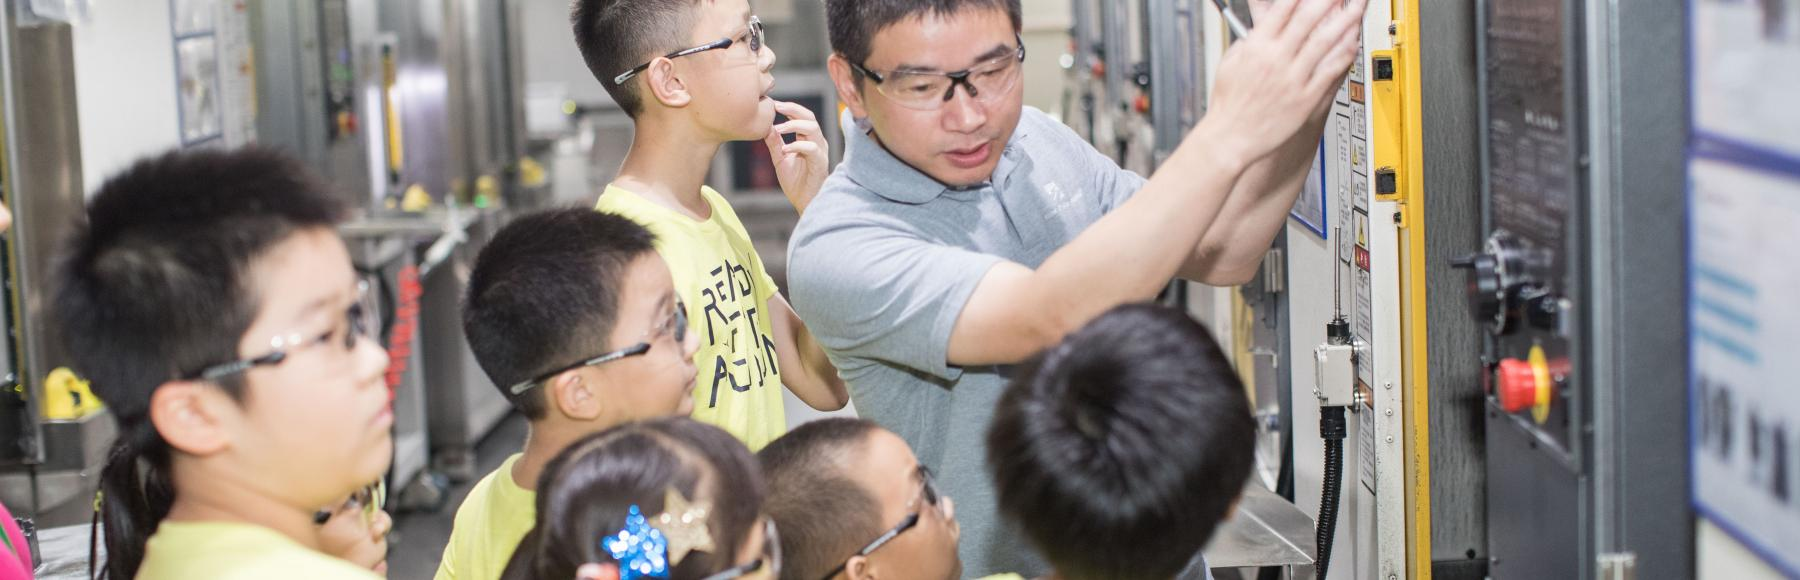 Group of children wearing yellow shirts standing in front of manufacturing equipment.  A man in a gray shirt is explaining what happens in the machine.